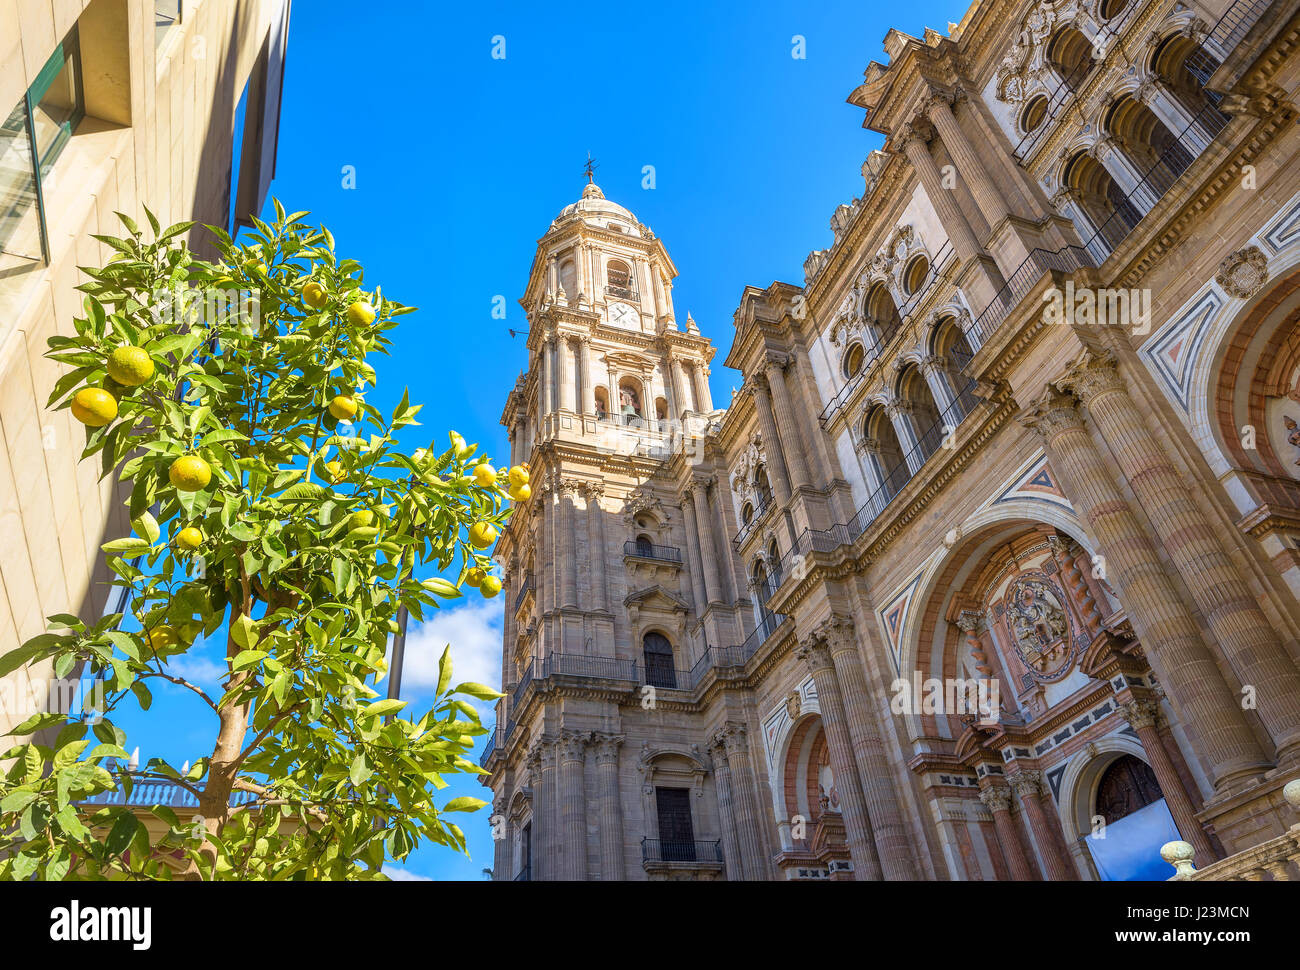 Bell tower and ornate facade of Malaga cathedral. Andalusia, Spain - Stock Image